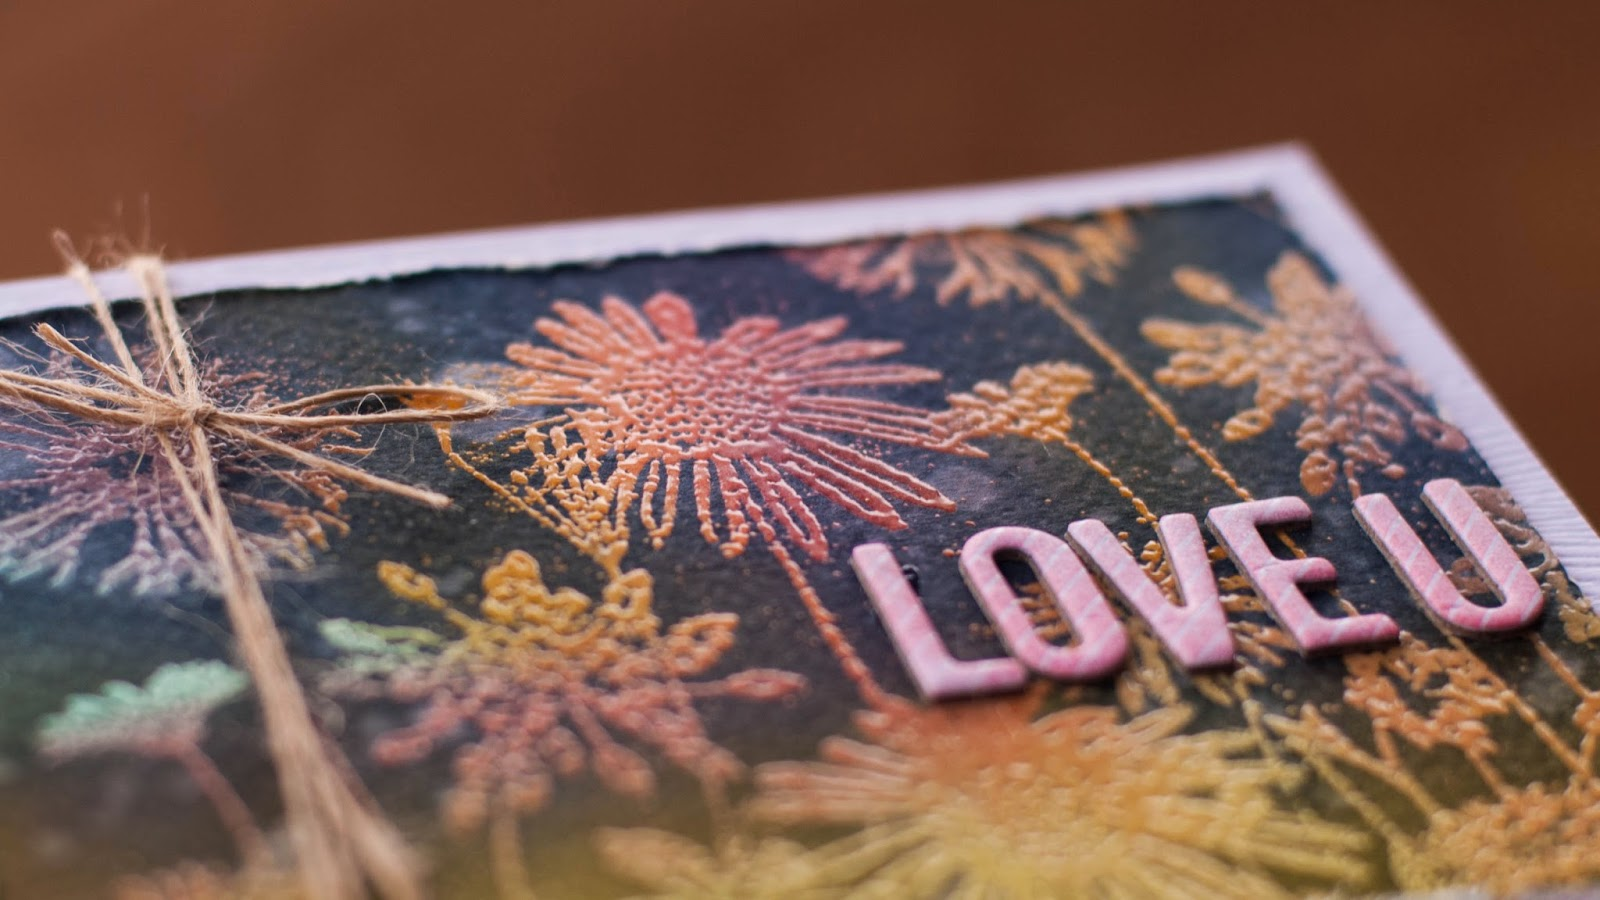 emboss resist with solid stamps - valentine card #4 - side view detail